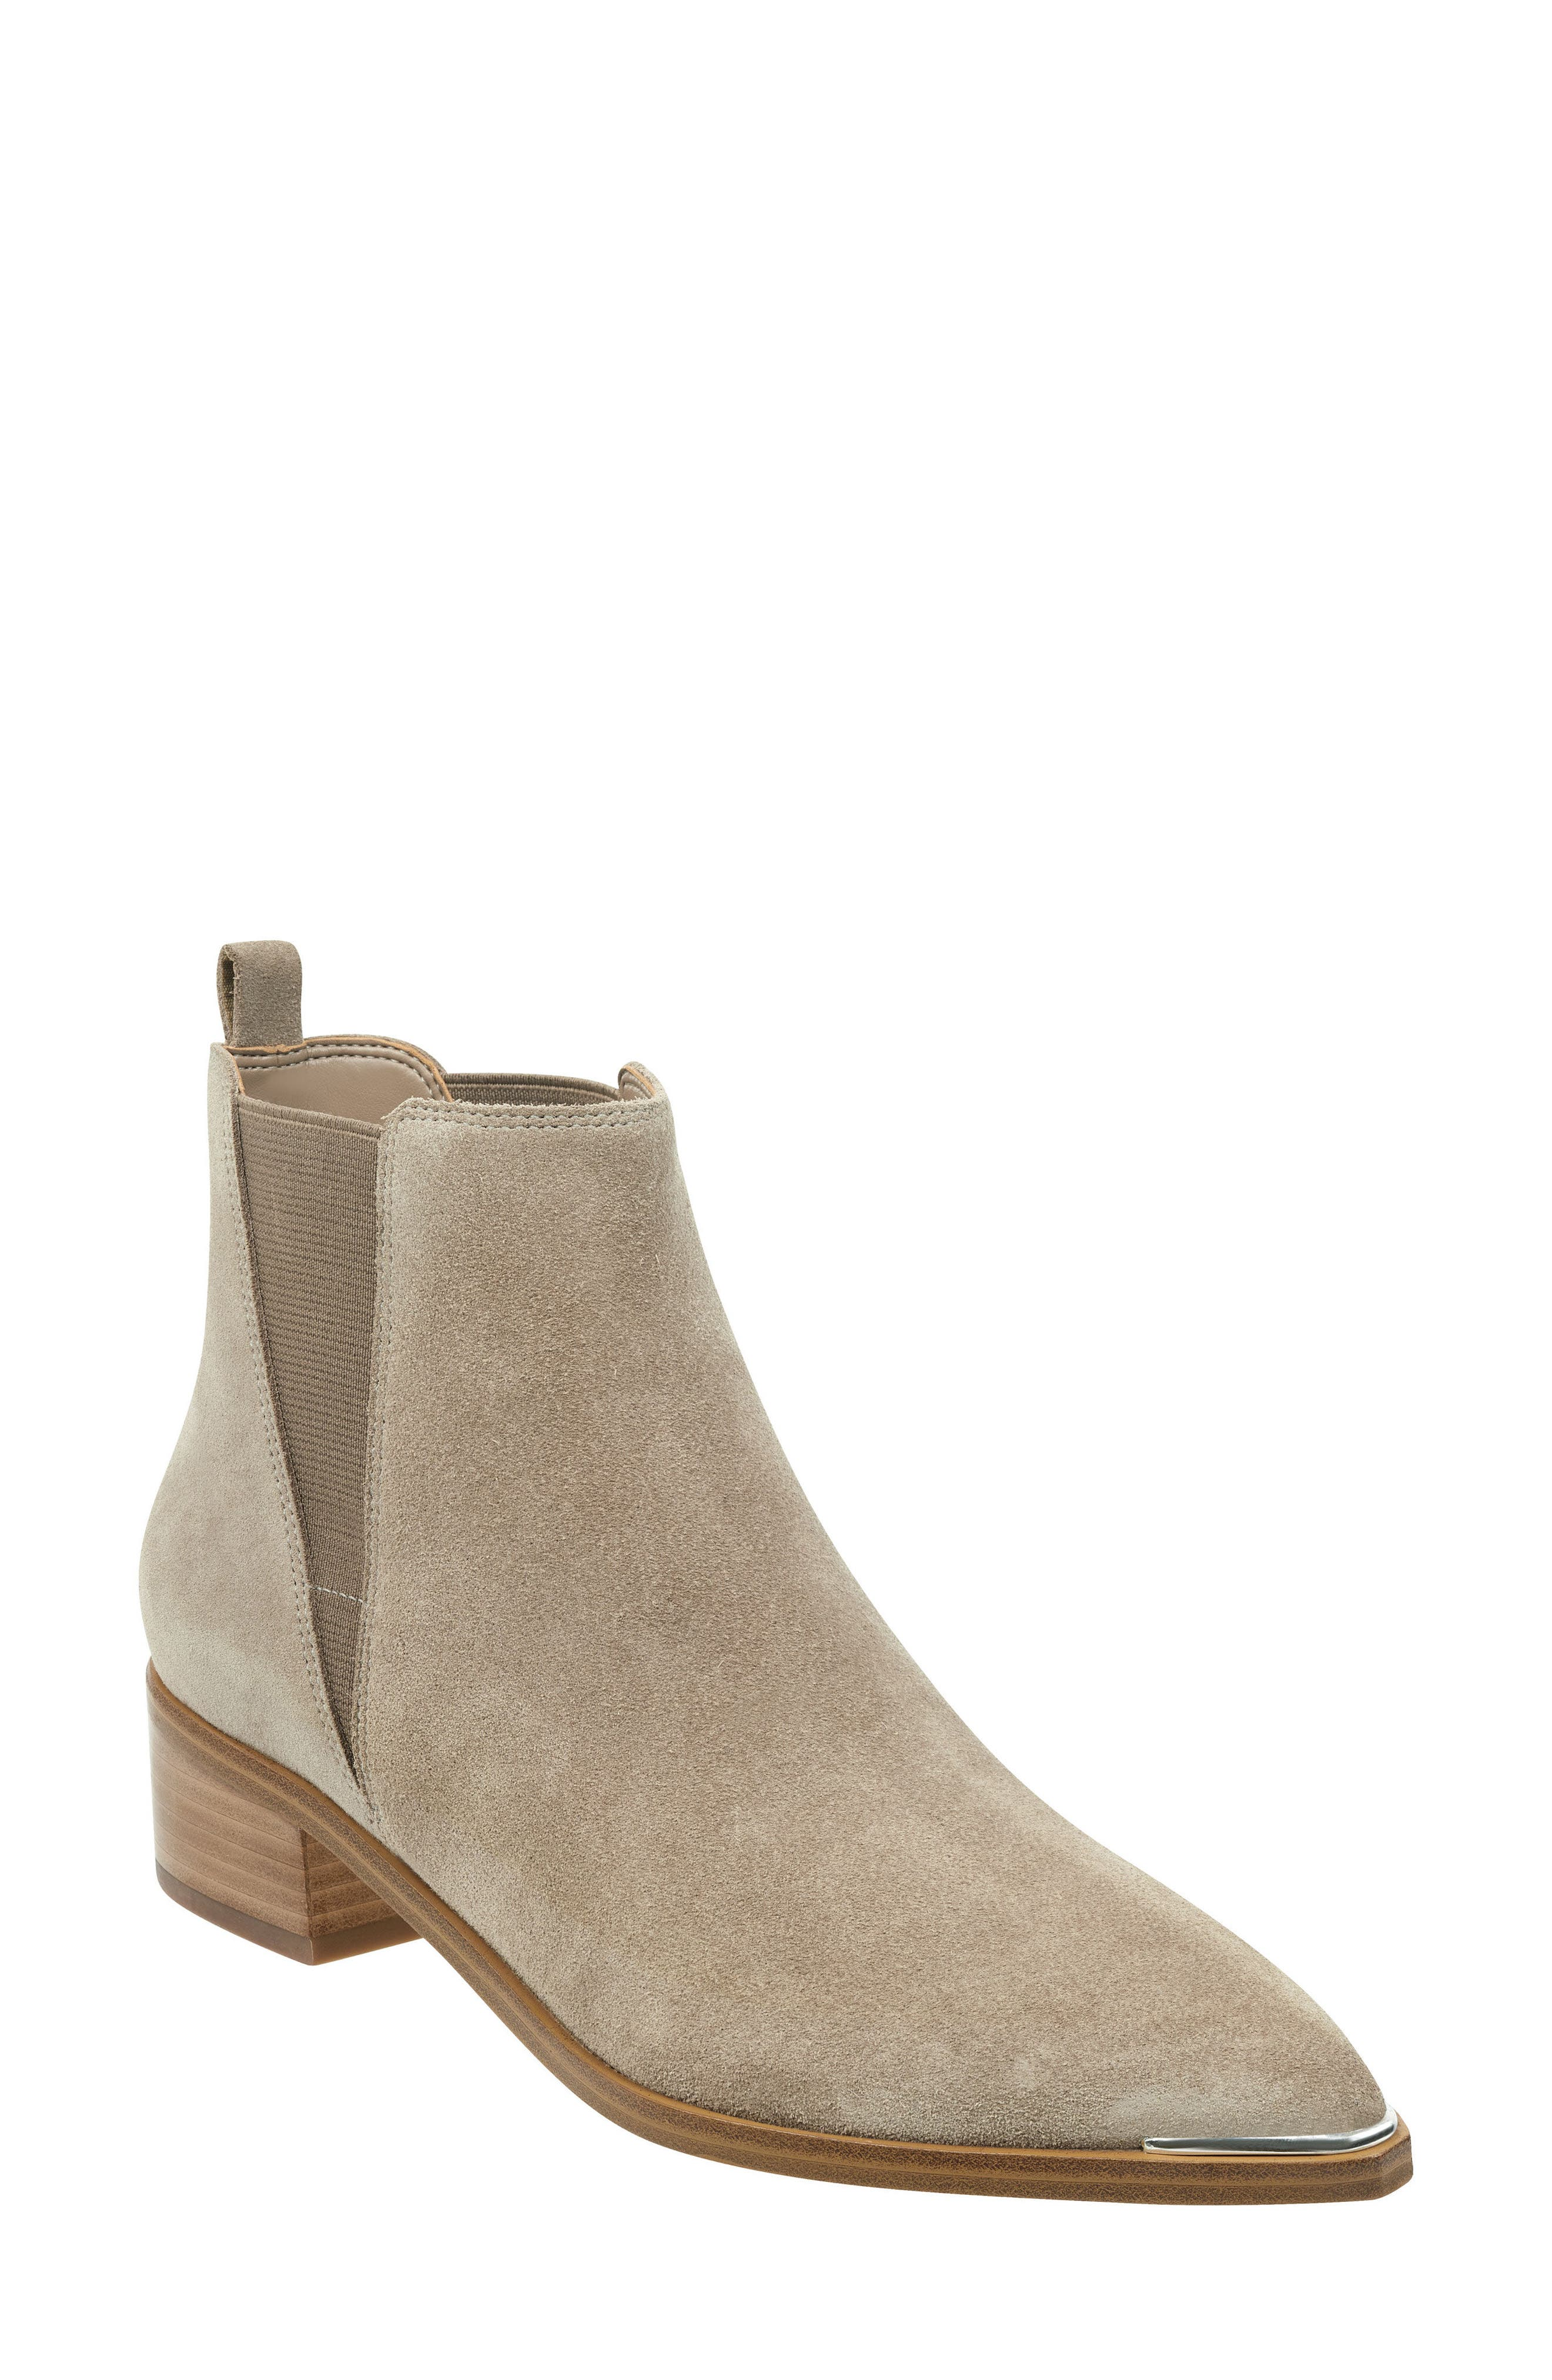 White Booties \u0026 Ankle Boots   Nordstrom